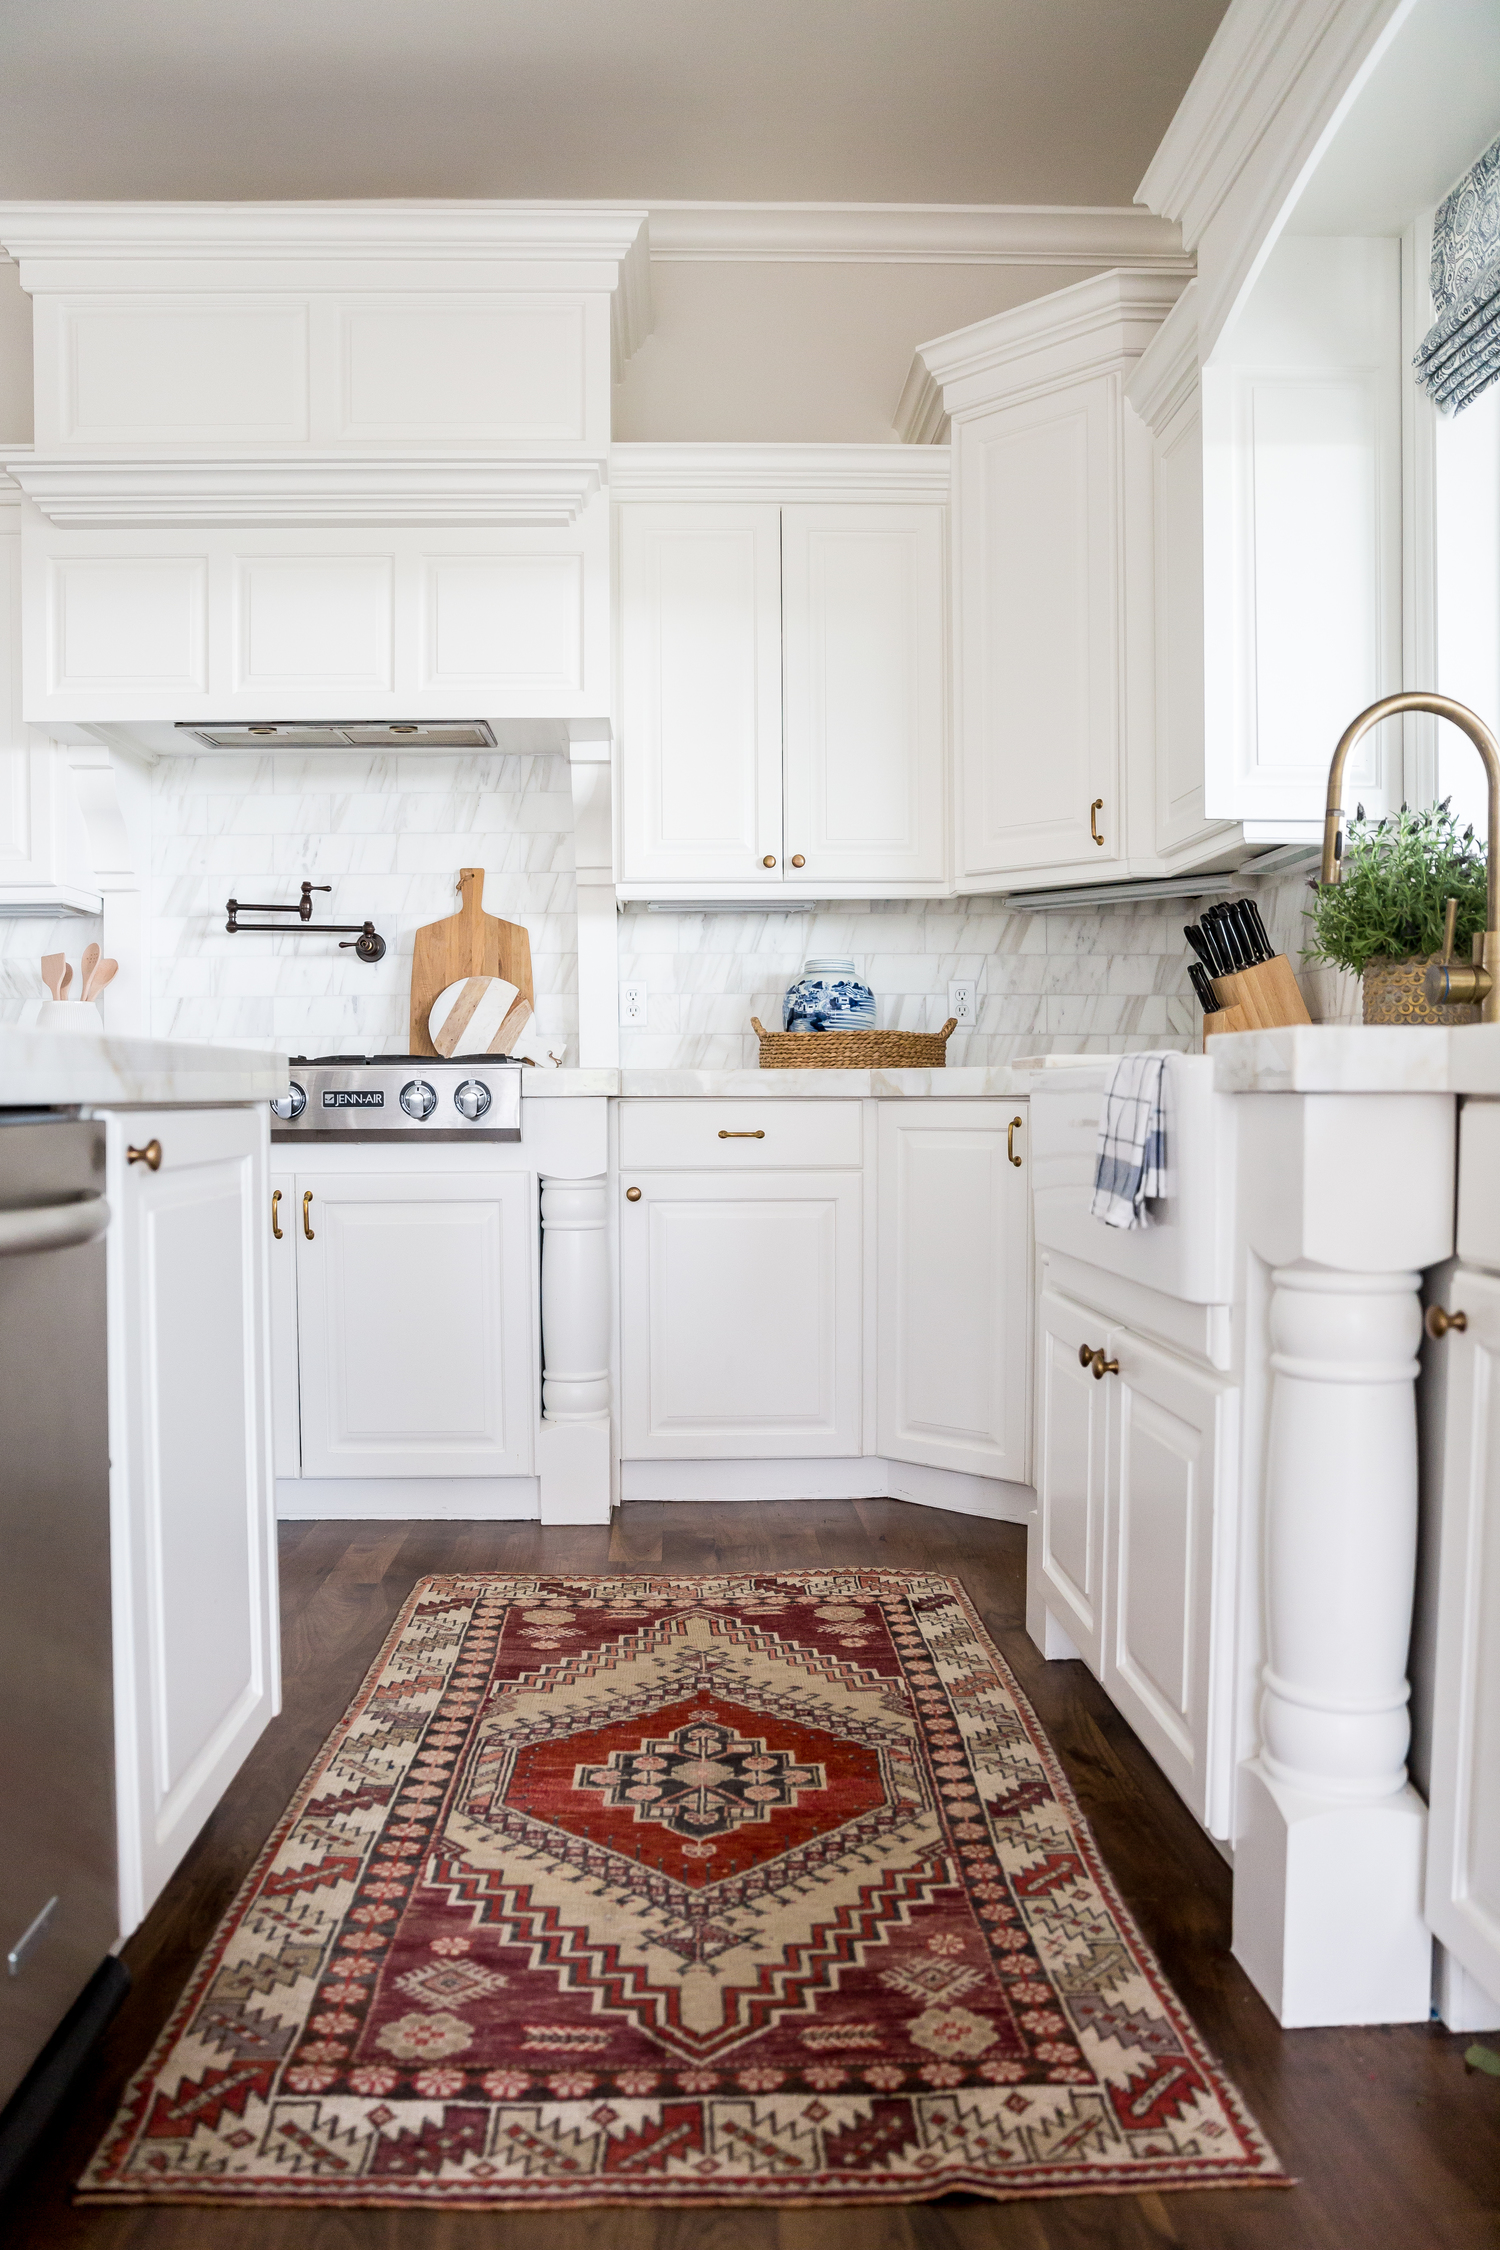 Red area rug in front of kitchen sink